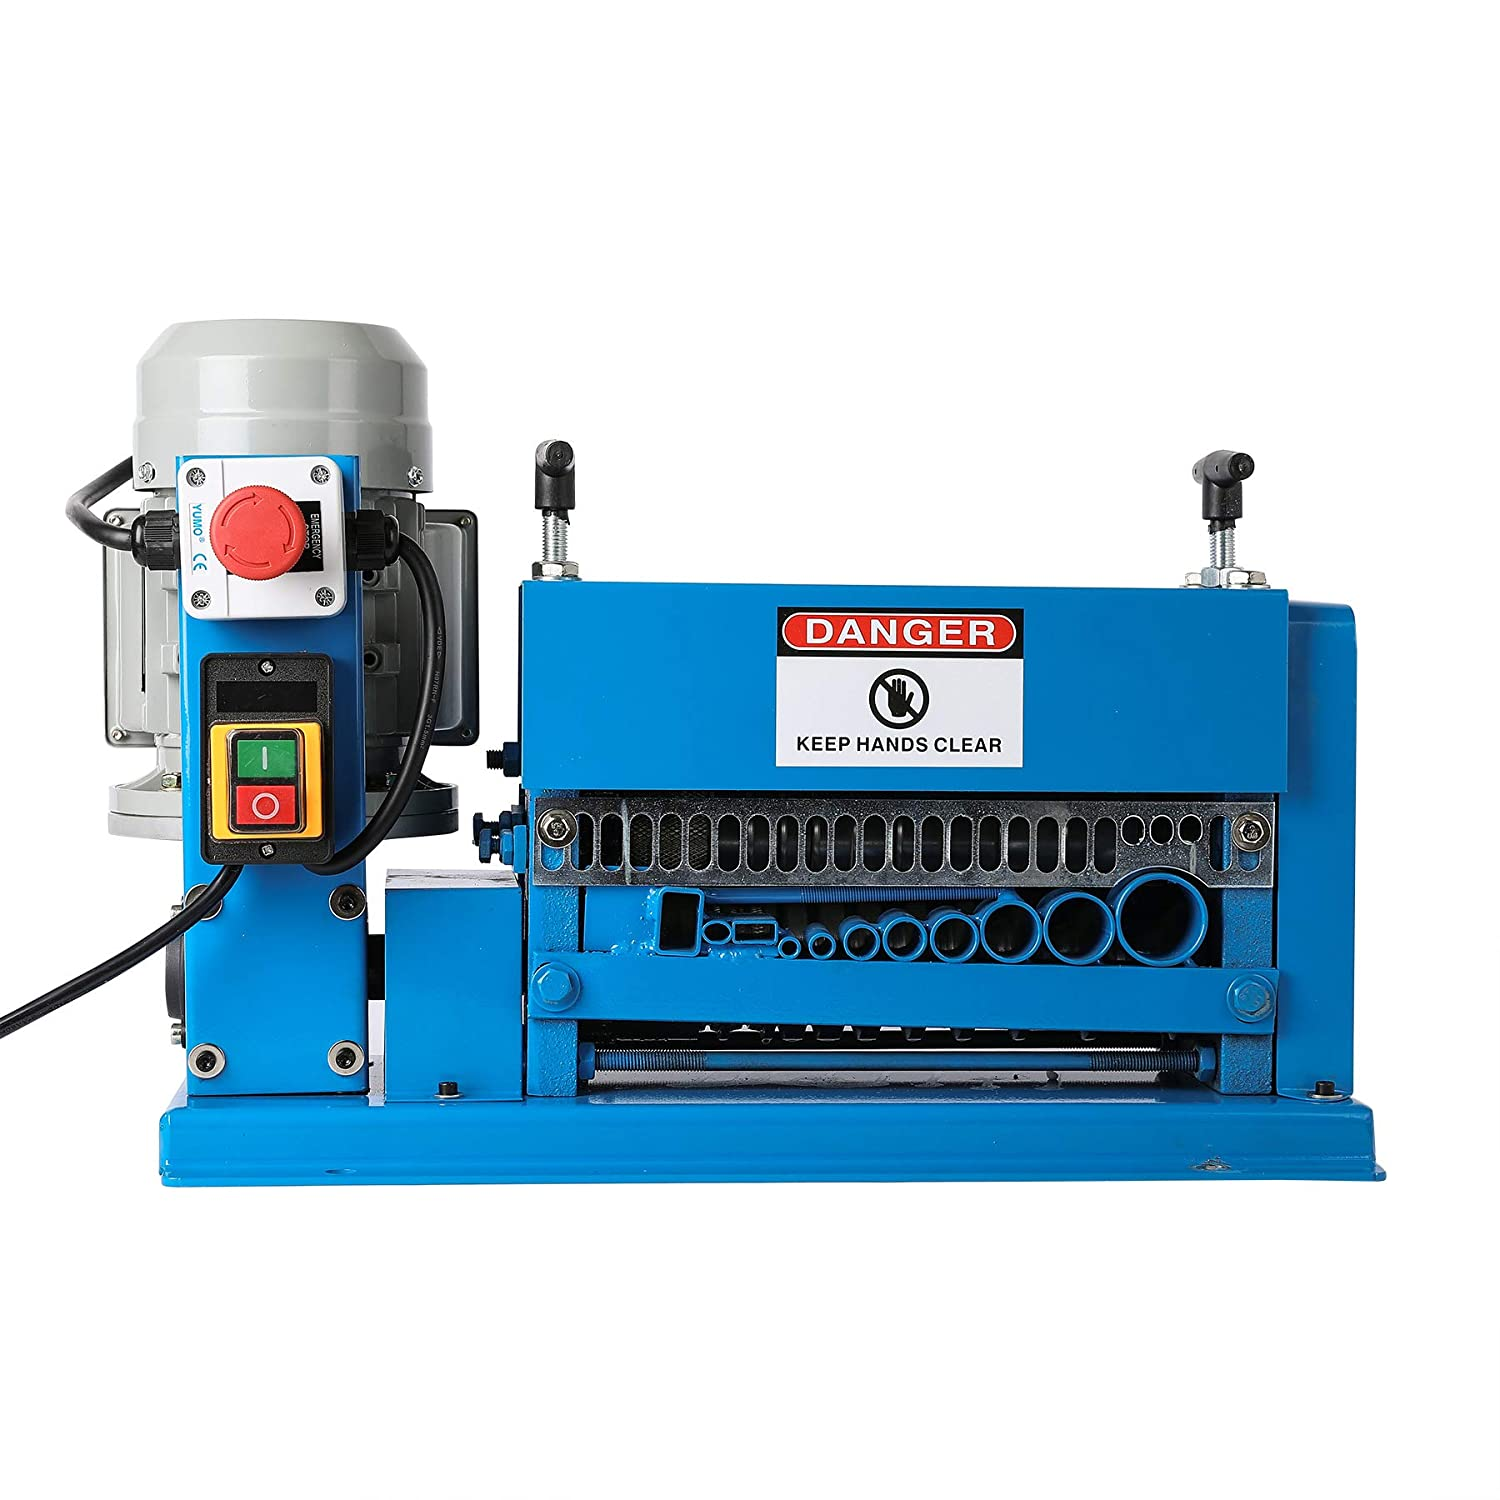 CO-Z Wire Stripping Machine 1.5mm to 38mm Diameter with 11 Channels Wire Stripping Machine Tool Manual Hand Cranked Industrial Wire Stripping Equipment